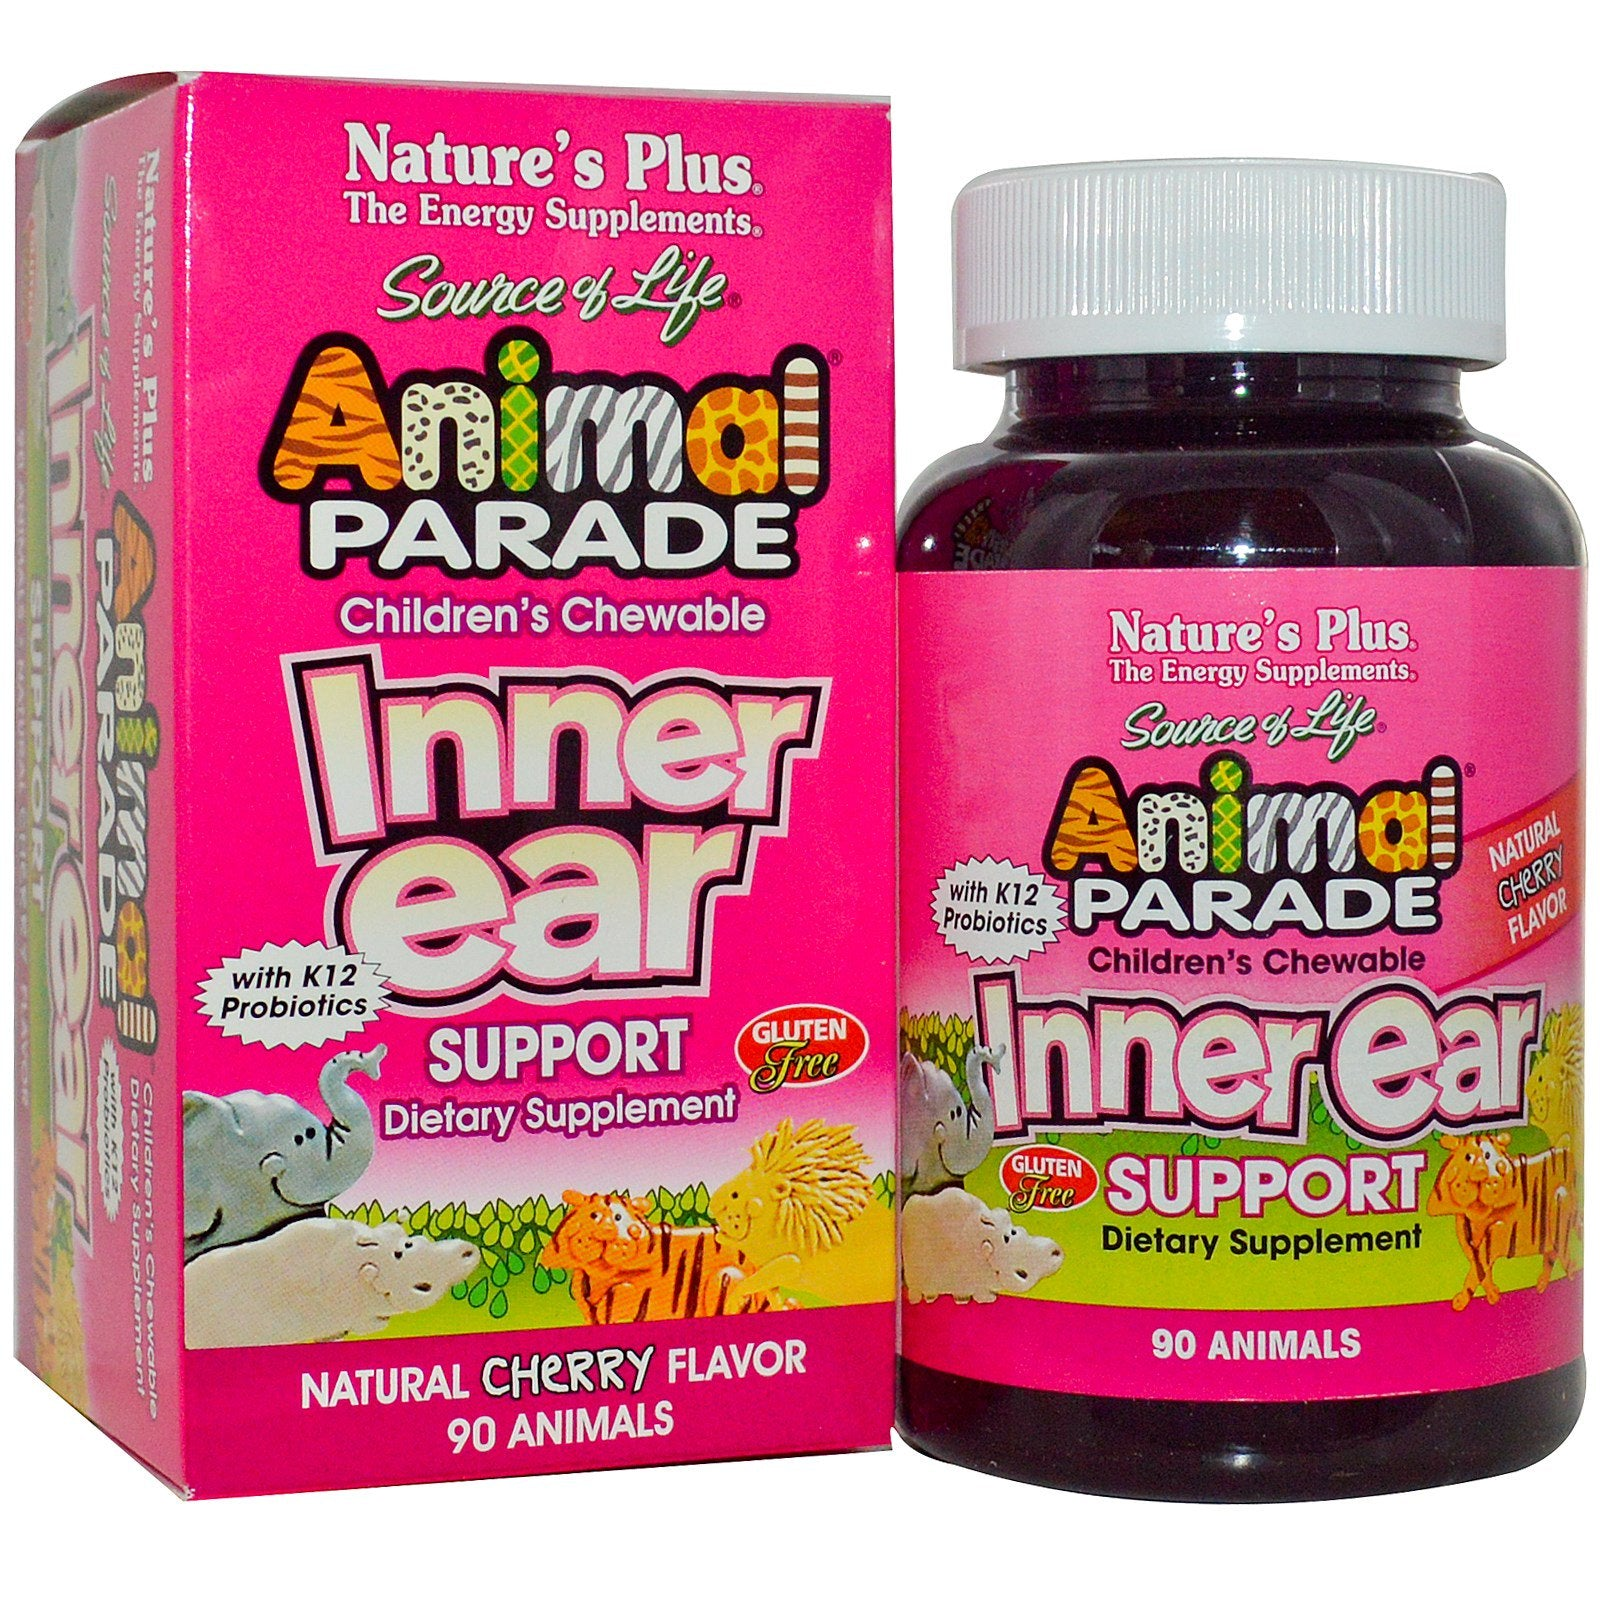 Natures Plus Source of Life Animal Parade Children's Chewable Inner Ear Support, 90 tabs.-NaturesWisdom